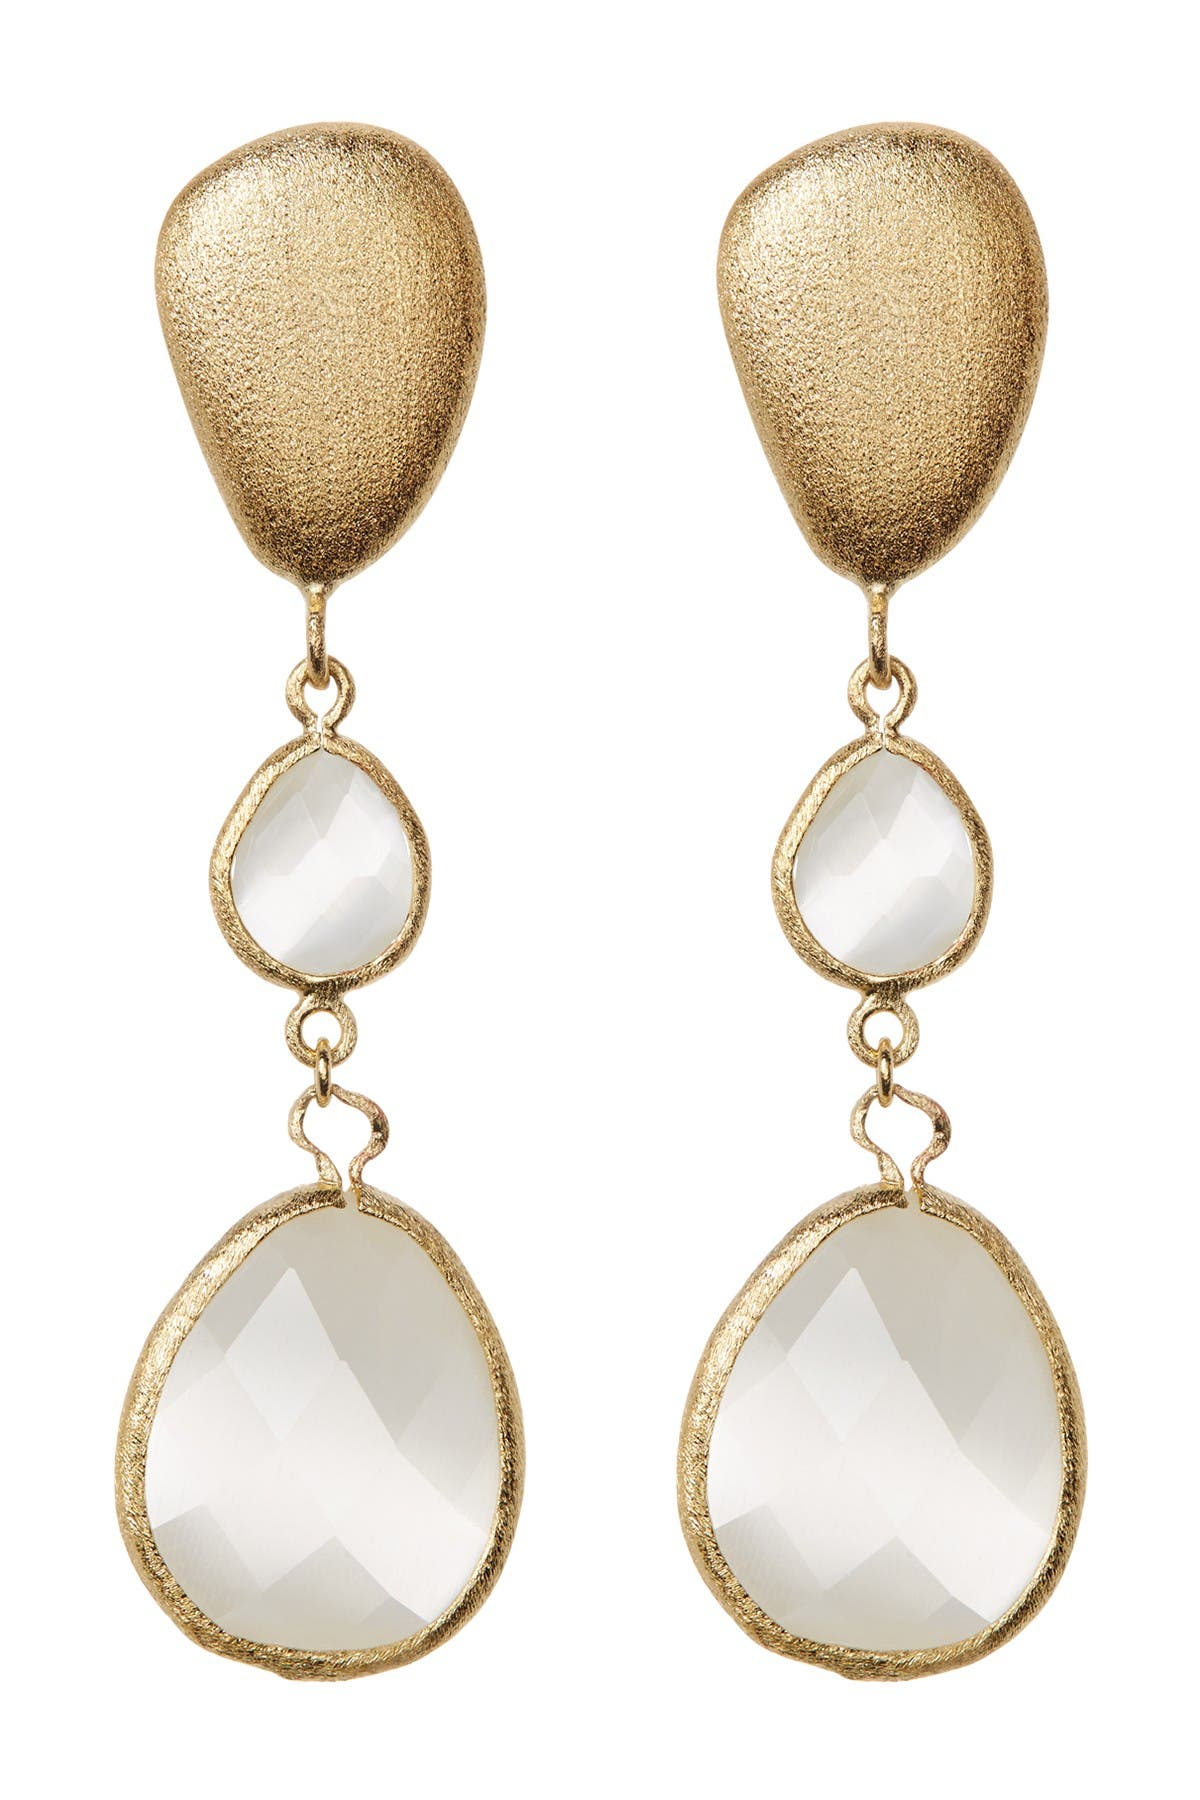 Image of Rivka Friedman Faceted White Cat's Eye Teardrop Satin FInish Drop Earrings